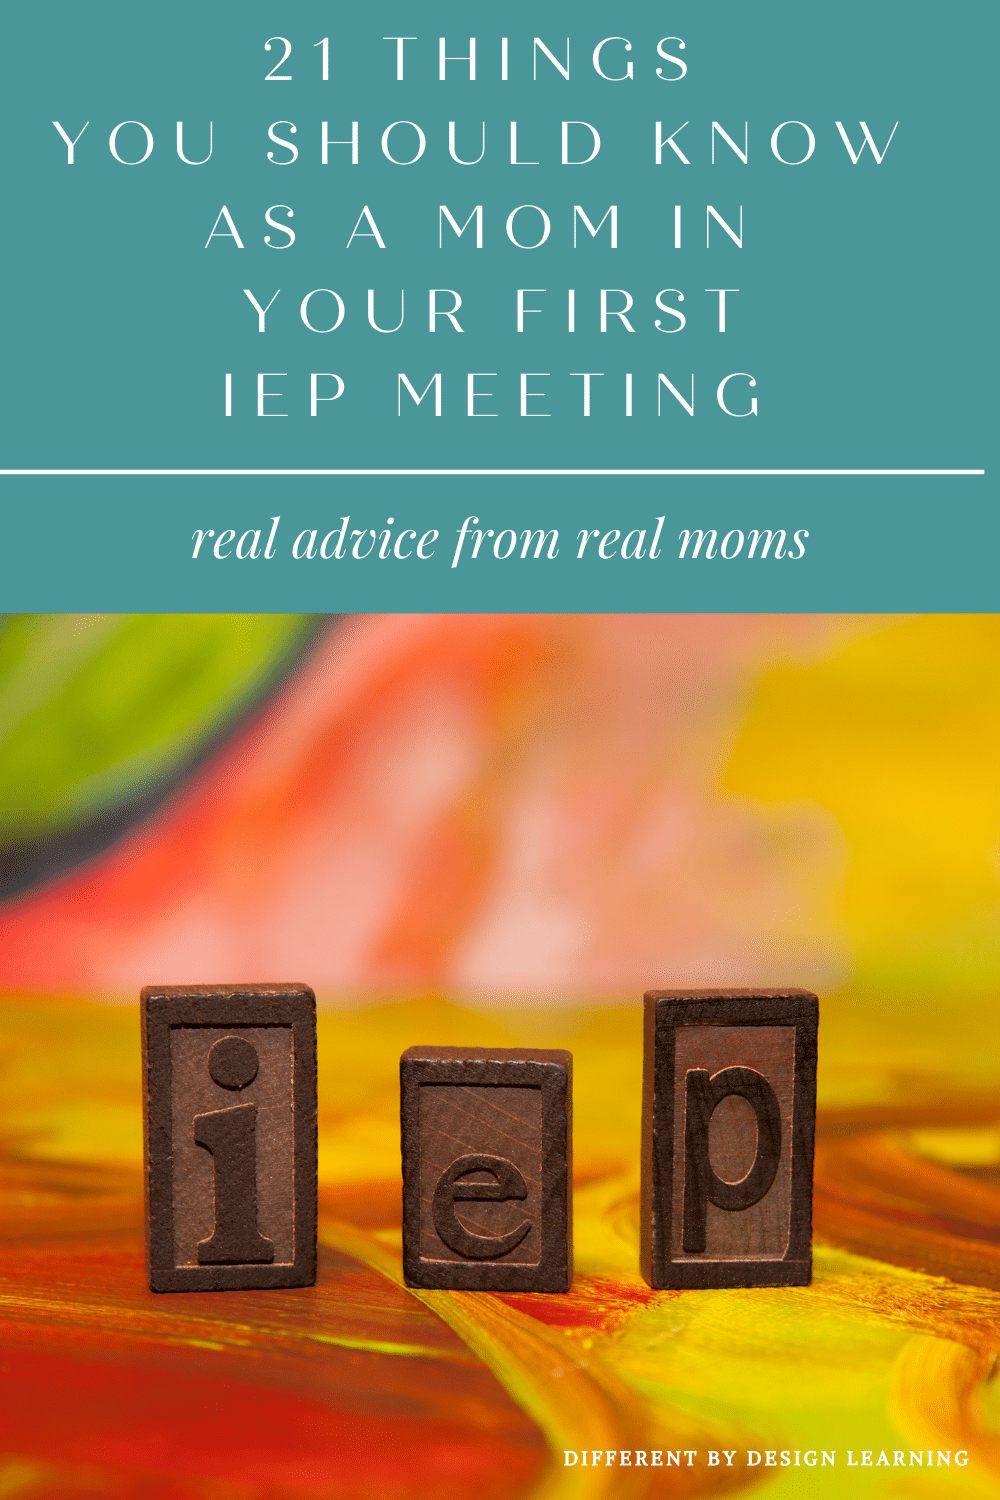 21 Things You Should Know As A Mom In Your First IEP Meeting